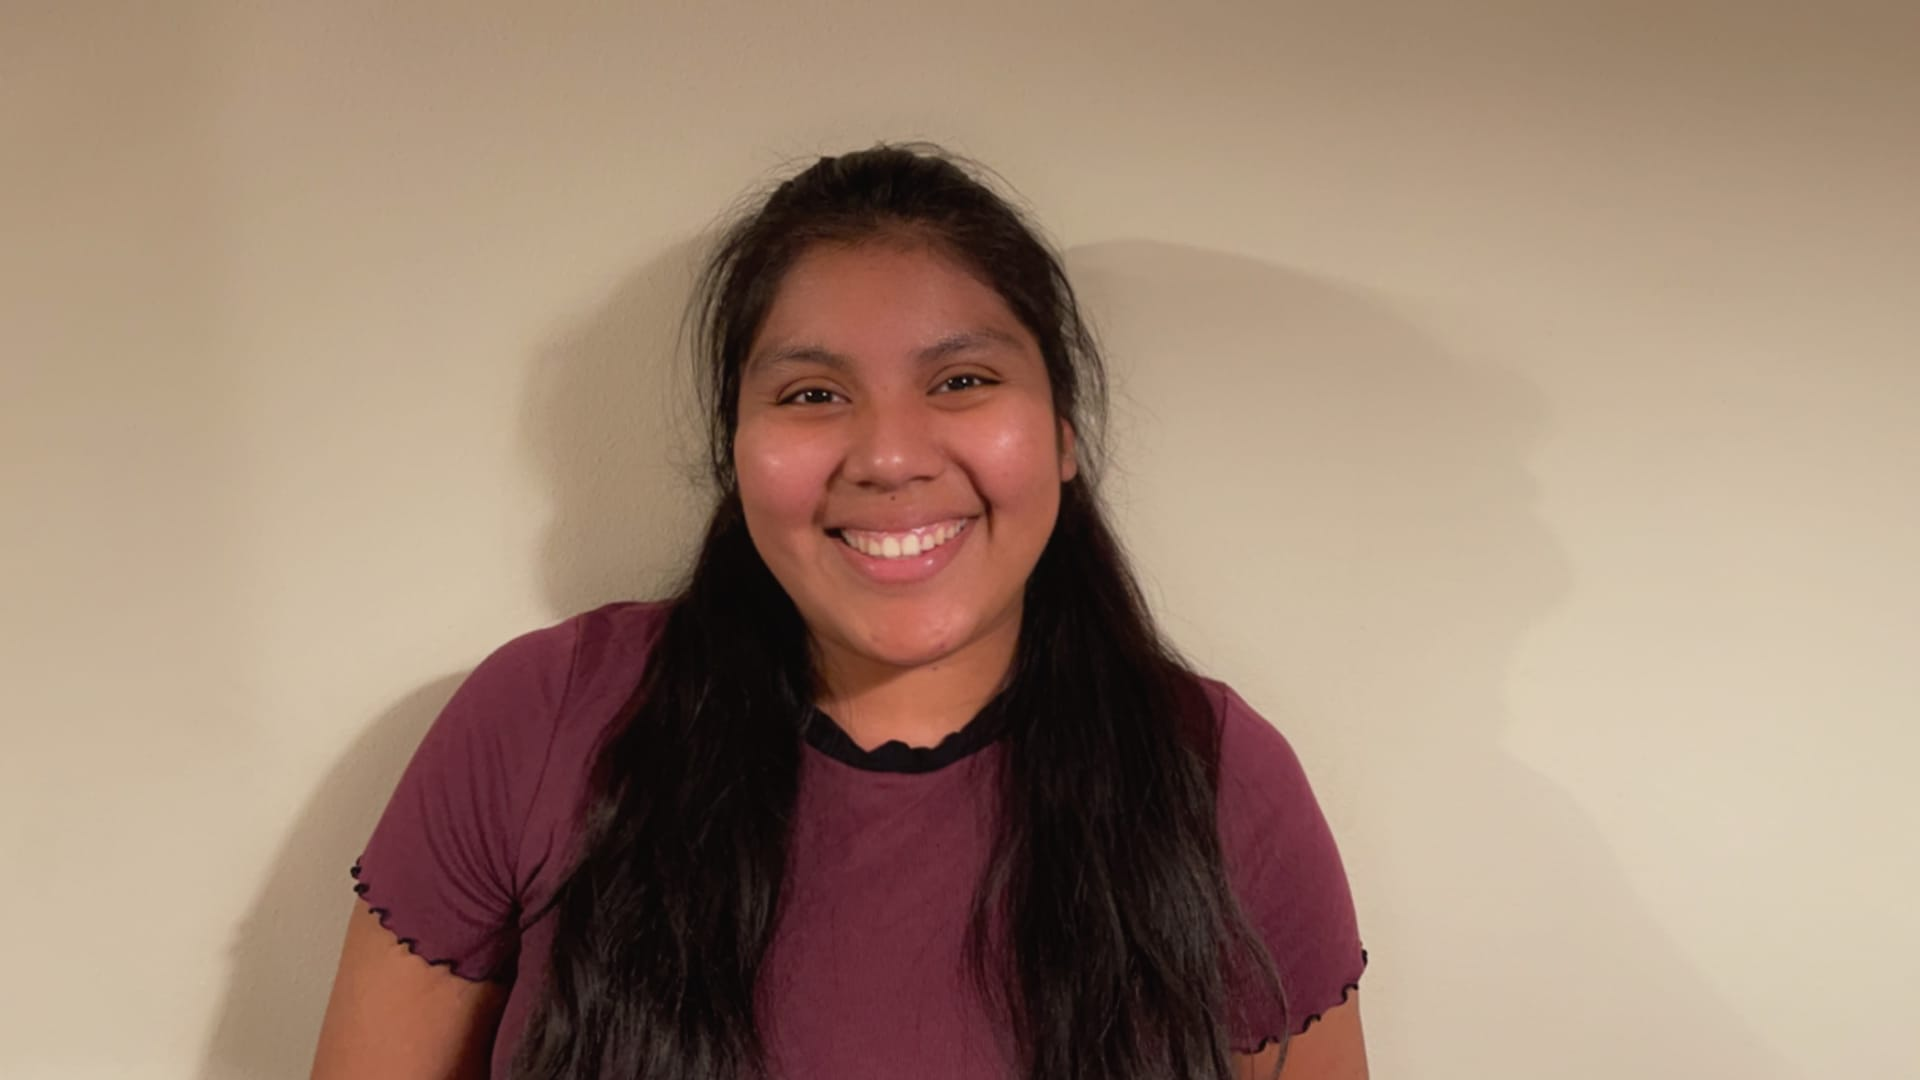 Guillermina Gutierrez Martinez, a senior at the University of Washington Seattle, took time off during the pandemic but is now enrolled and working for the university.